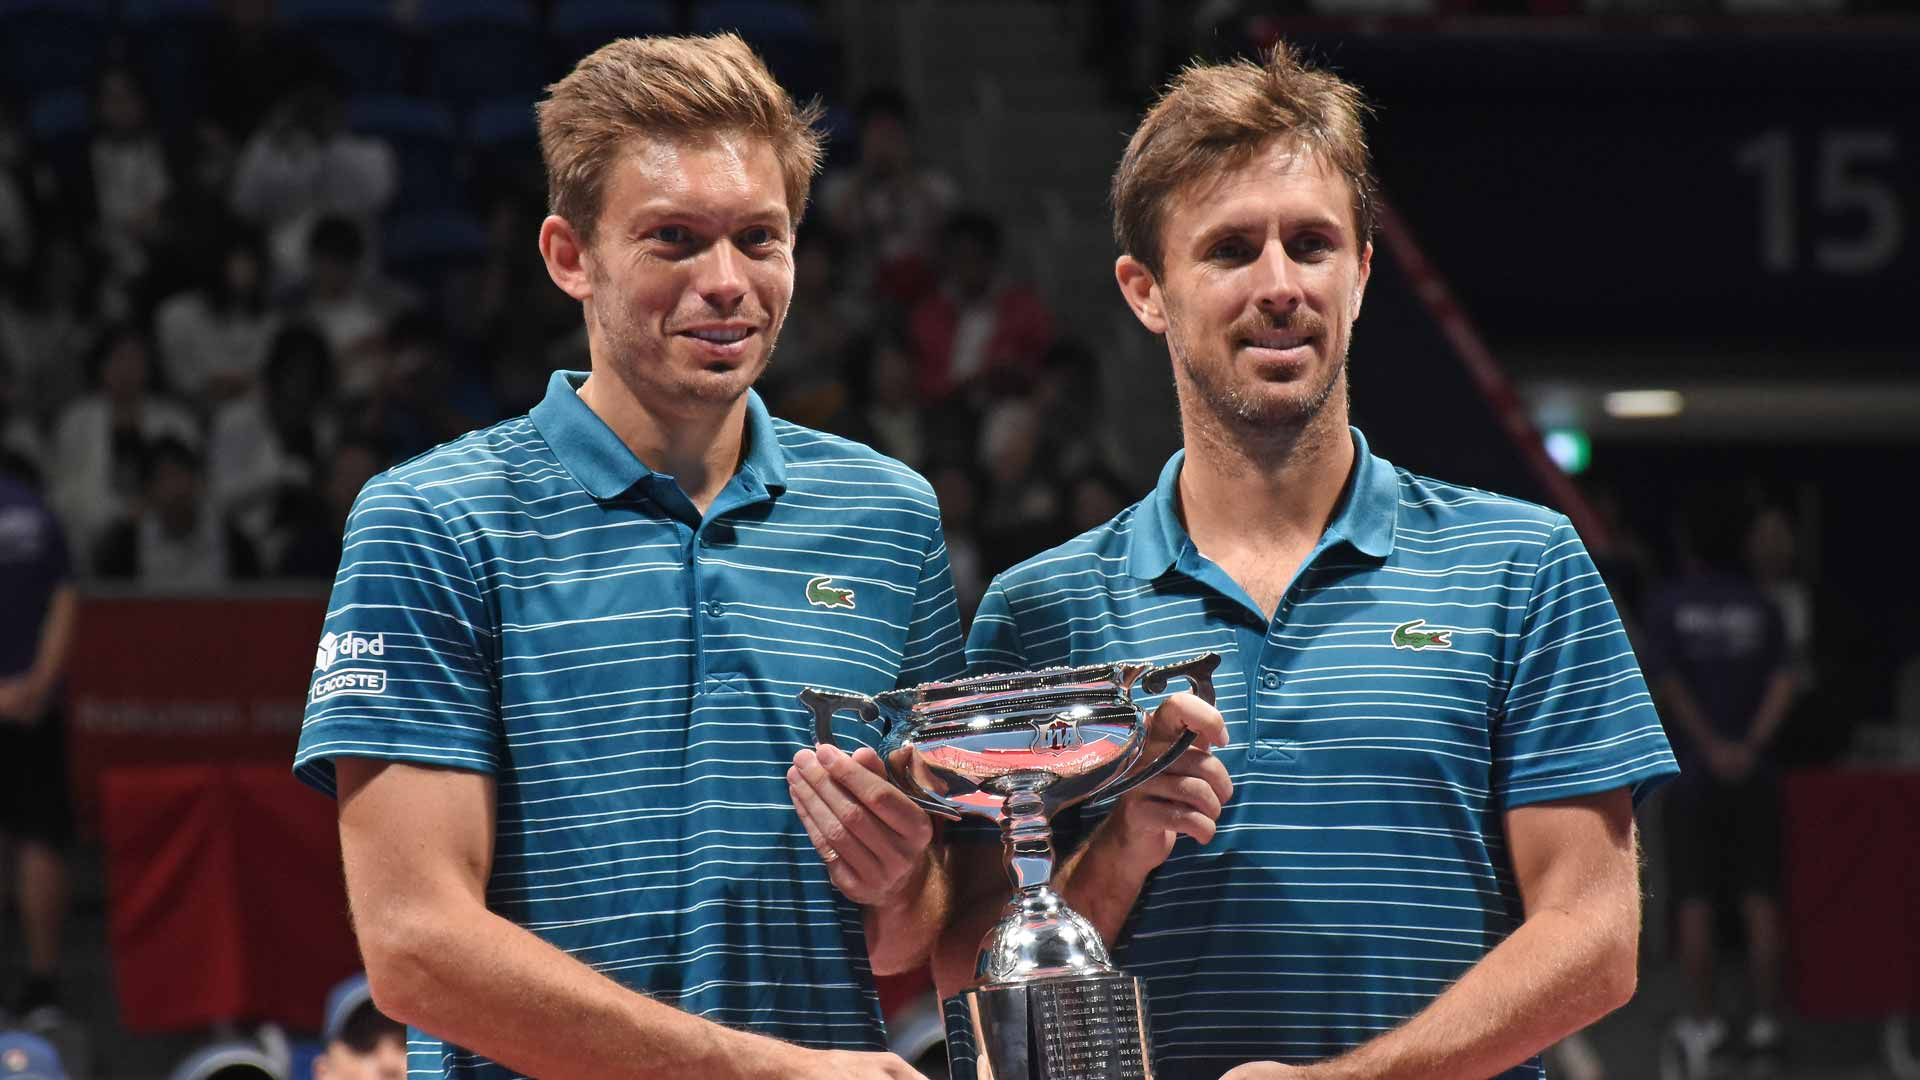 Nicolas Mahut and Edouard Roger-Vasselin hold the trophy in Tokyo 2019